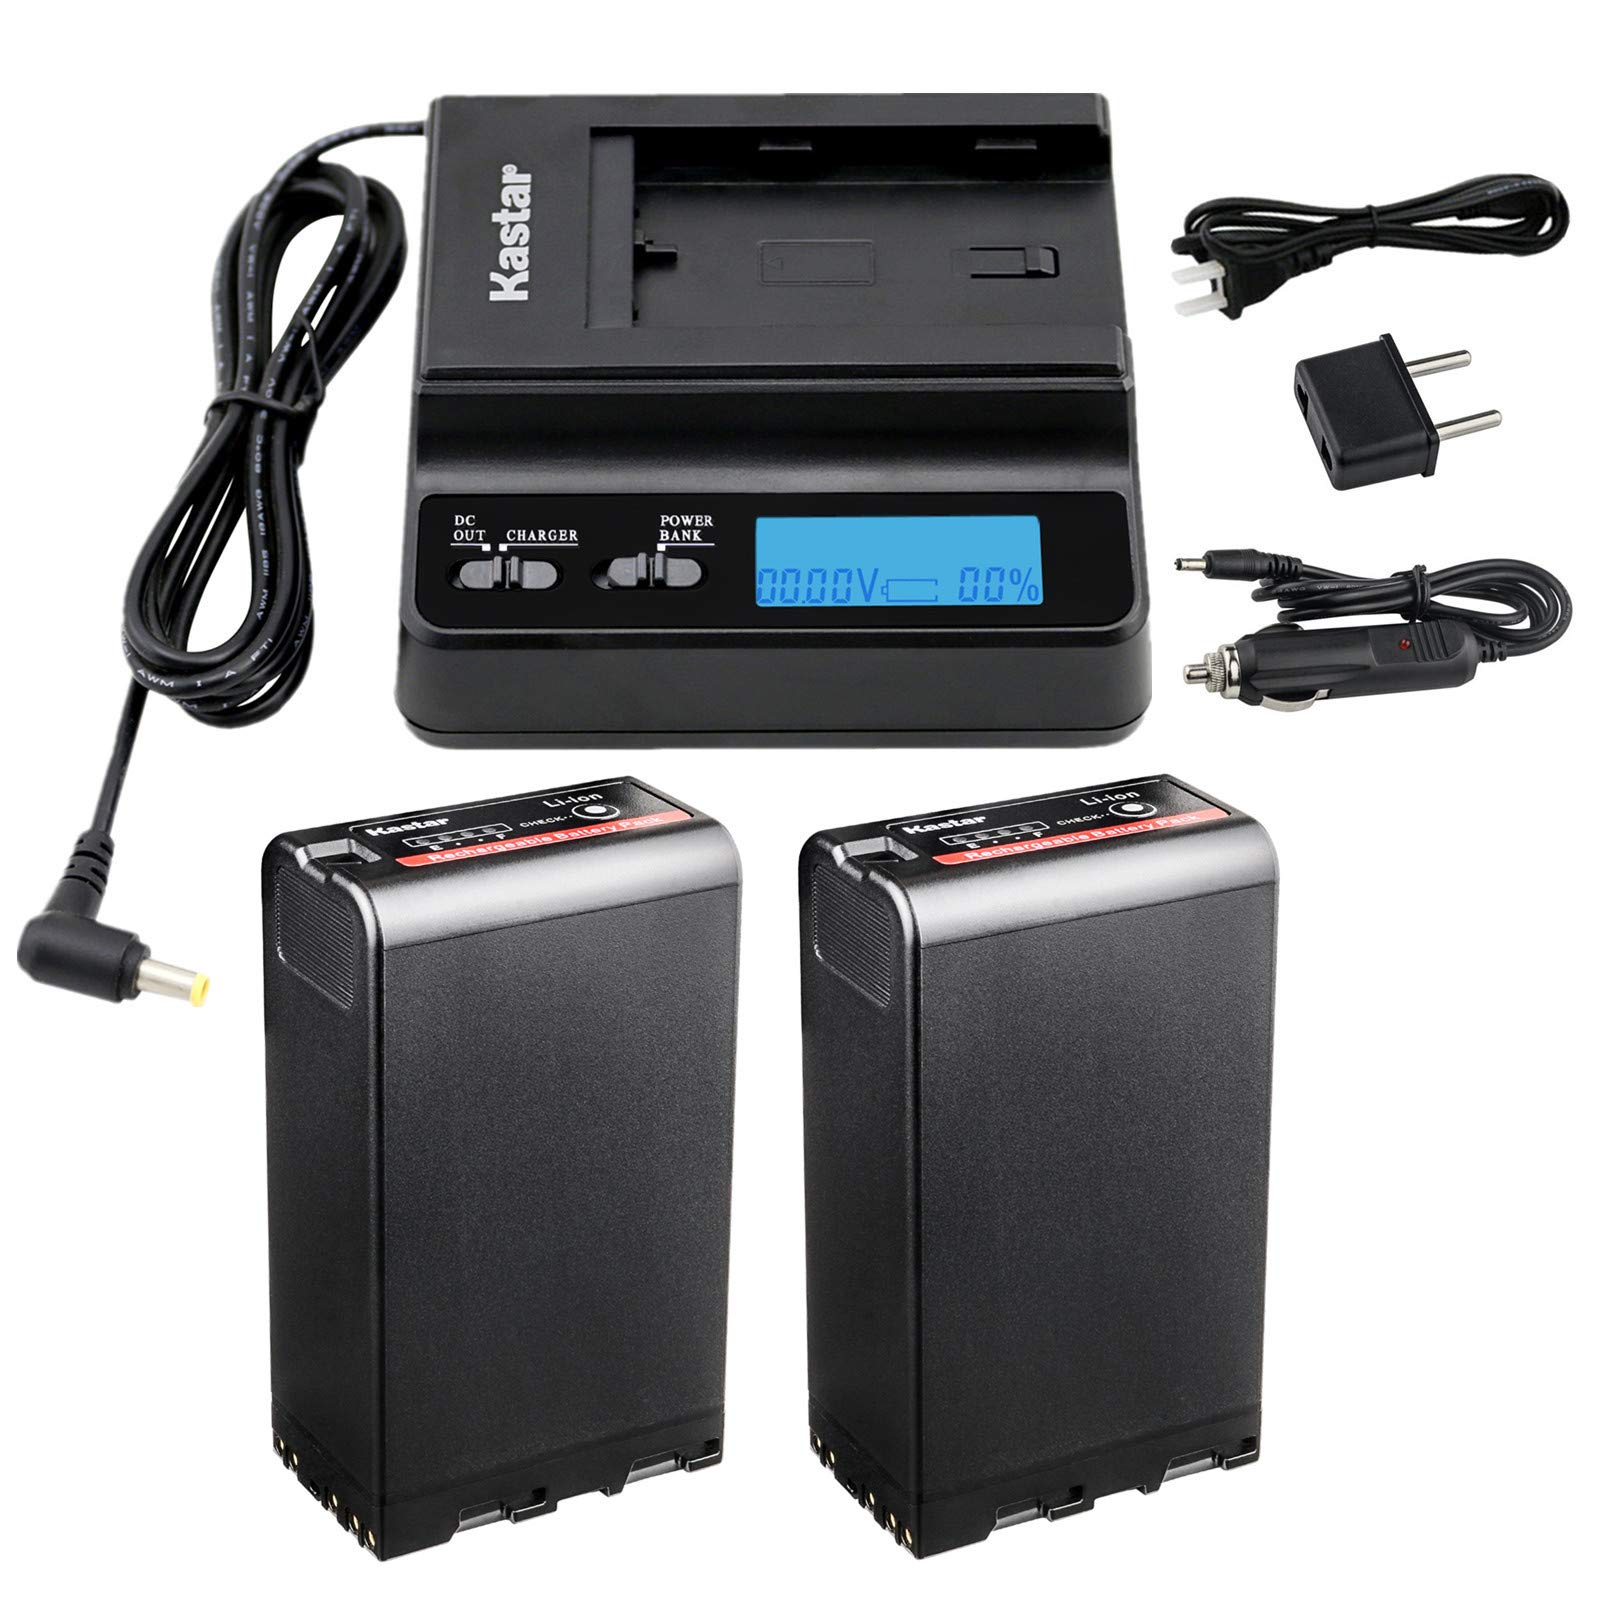 Kastar Fast Charger and Battery (2X) for Sony BP-U90 PXW-FS7/FS5/X180 PMW-100/150/150P/160 PMW-200/300 PMW-EX1/EX1R PMW-EX3/EX3R PMW-EX160 PMW-EX260 PMW-EX280 PMW-F3/F3K/F3L HD422 PHU-60K PXW-Z450 by Kastar